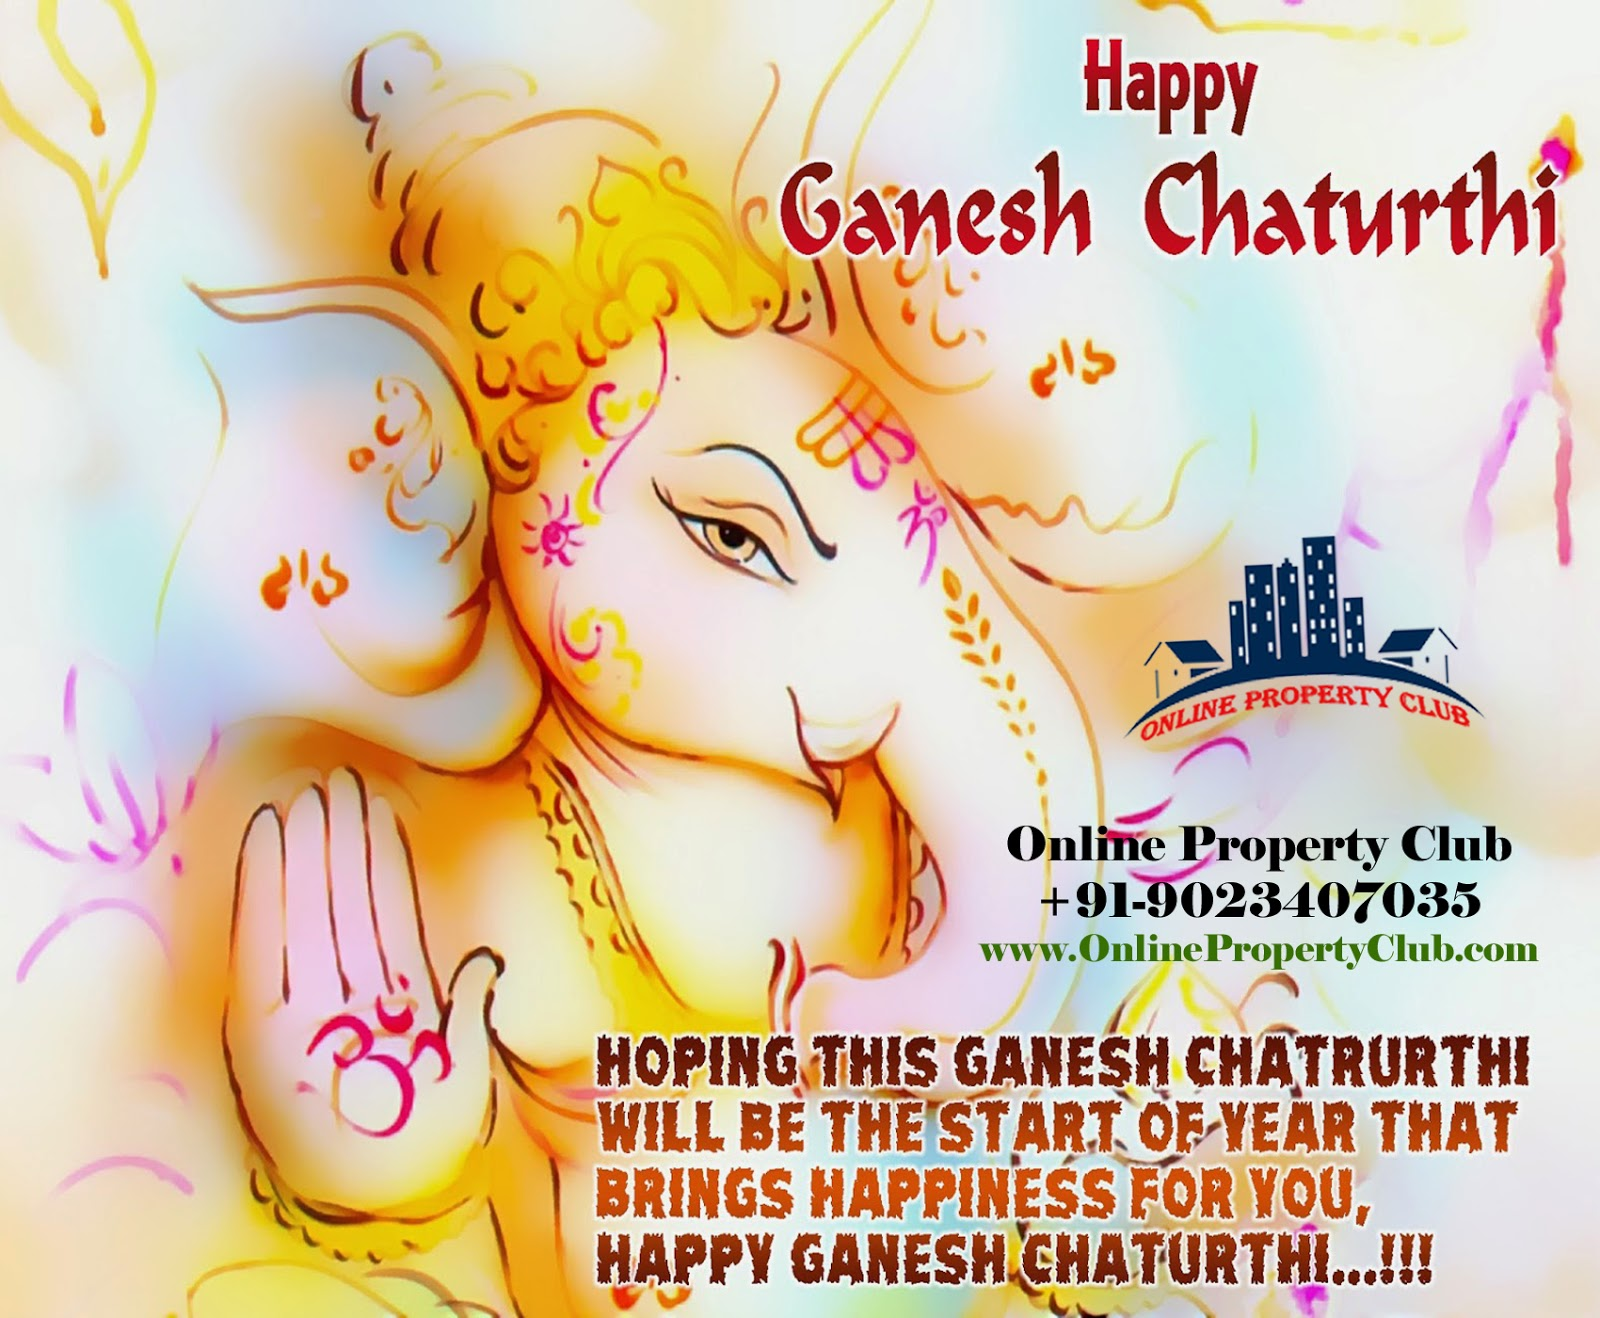 Happy Ganesh Chaturthi 2014